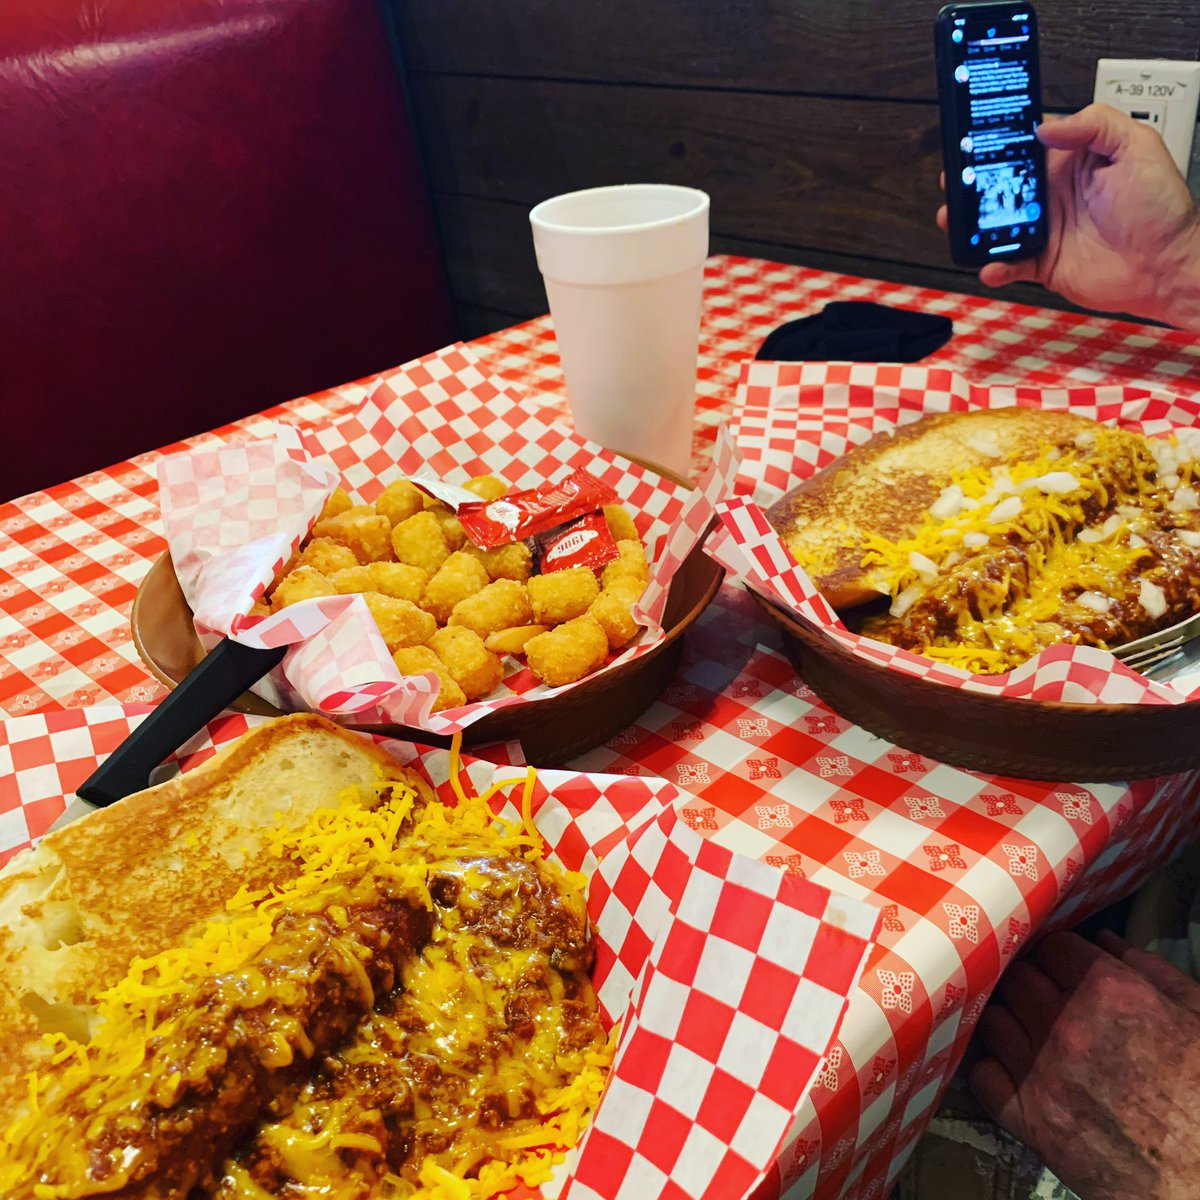 Yummy Coney Dogs and tots🥰 and Steve on his phone😂😂😂